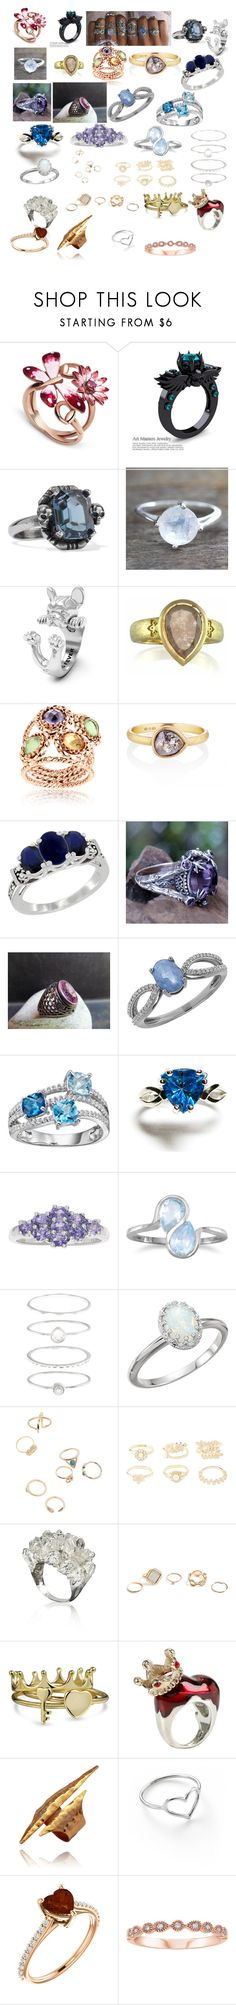 """""""Coolest and Prettiest Rings"""" by obrienmarygrace ❤ liked on Polyvore featuring Gucci, NOVICA, Alexander McQueen, Luca Jouel, West Coast Jewelry, Lord & Taylor, BillyTheTree, Accessorize, Charlotte Russe and GUESS"""